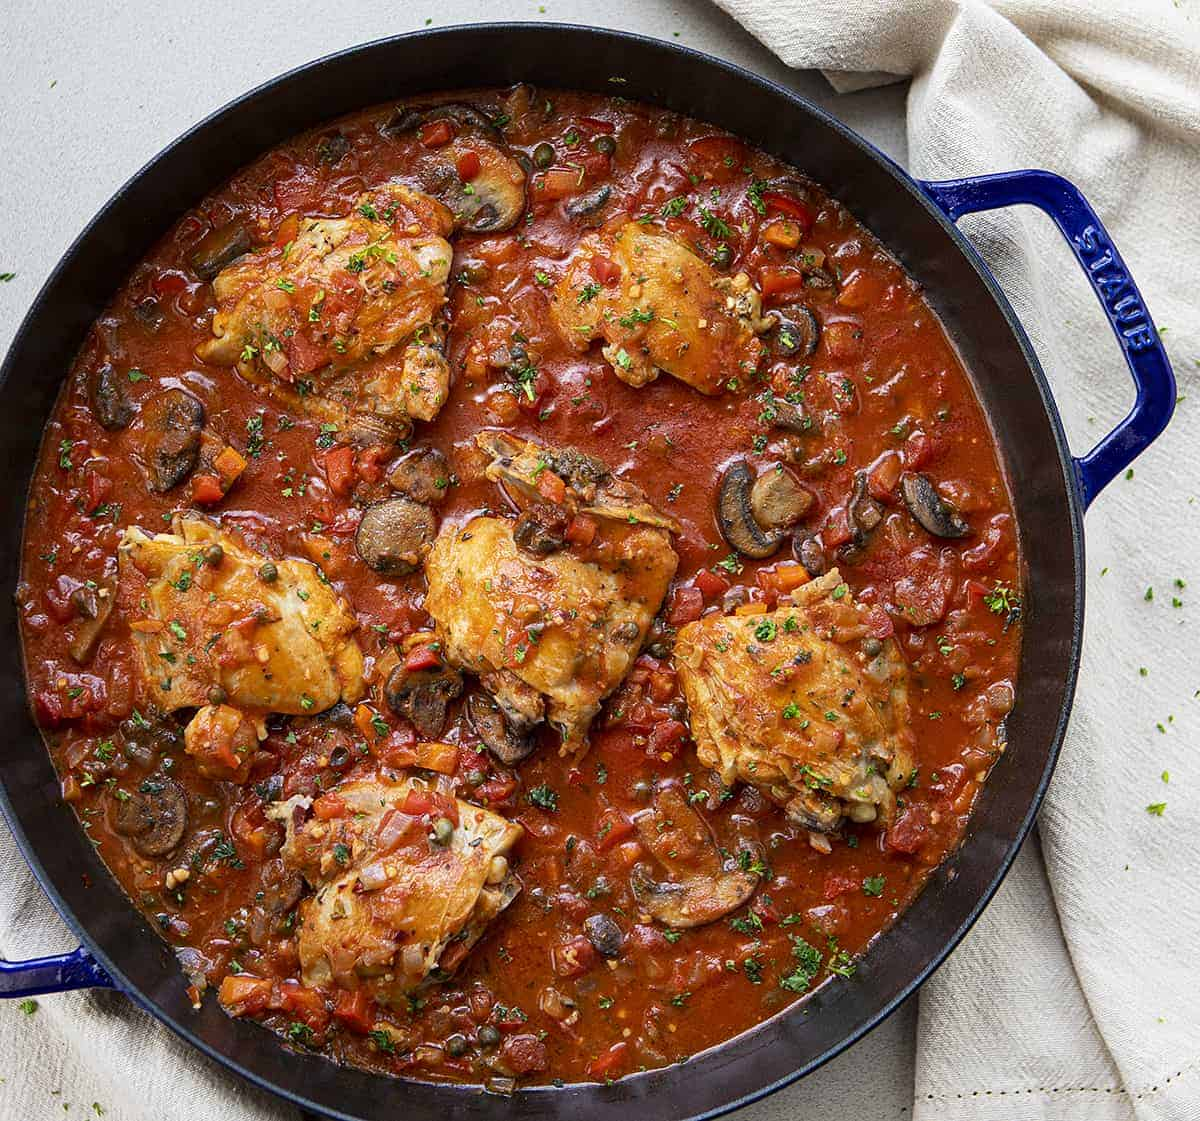 Overhead Image of Cheesecake Factory Chicken Cacciatore in a Blue Skillet with Towels Next to Skillet